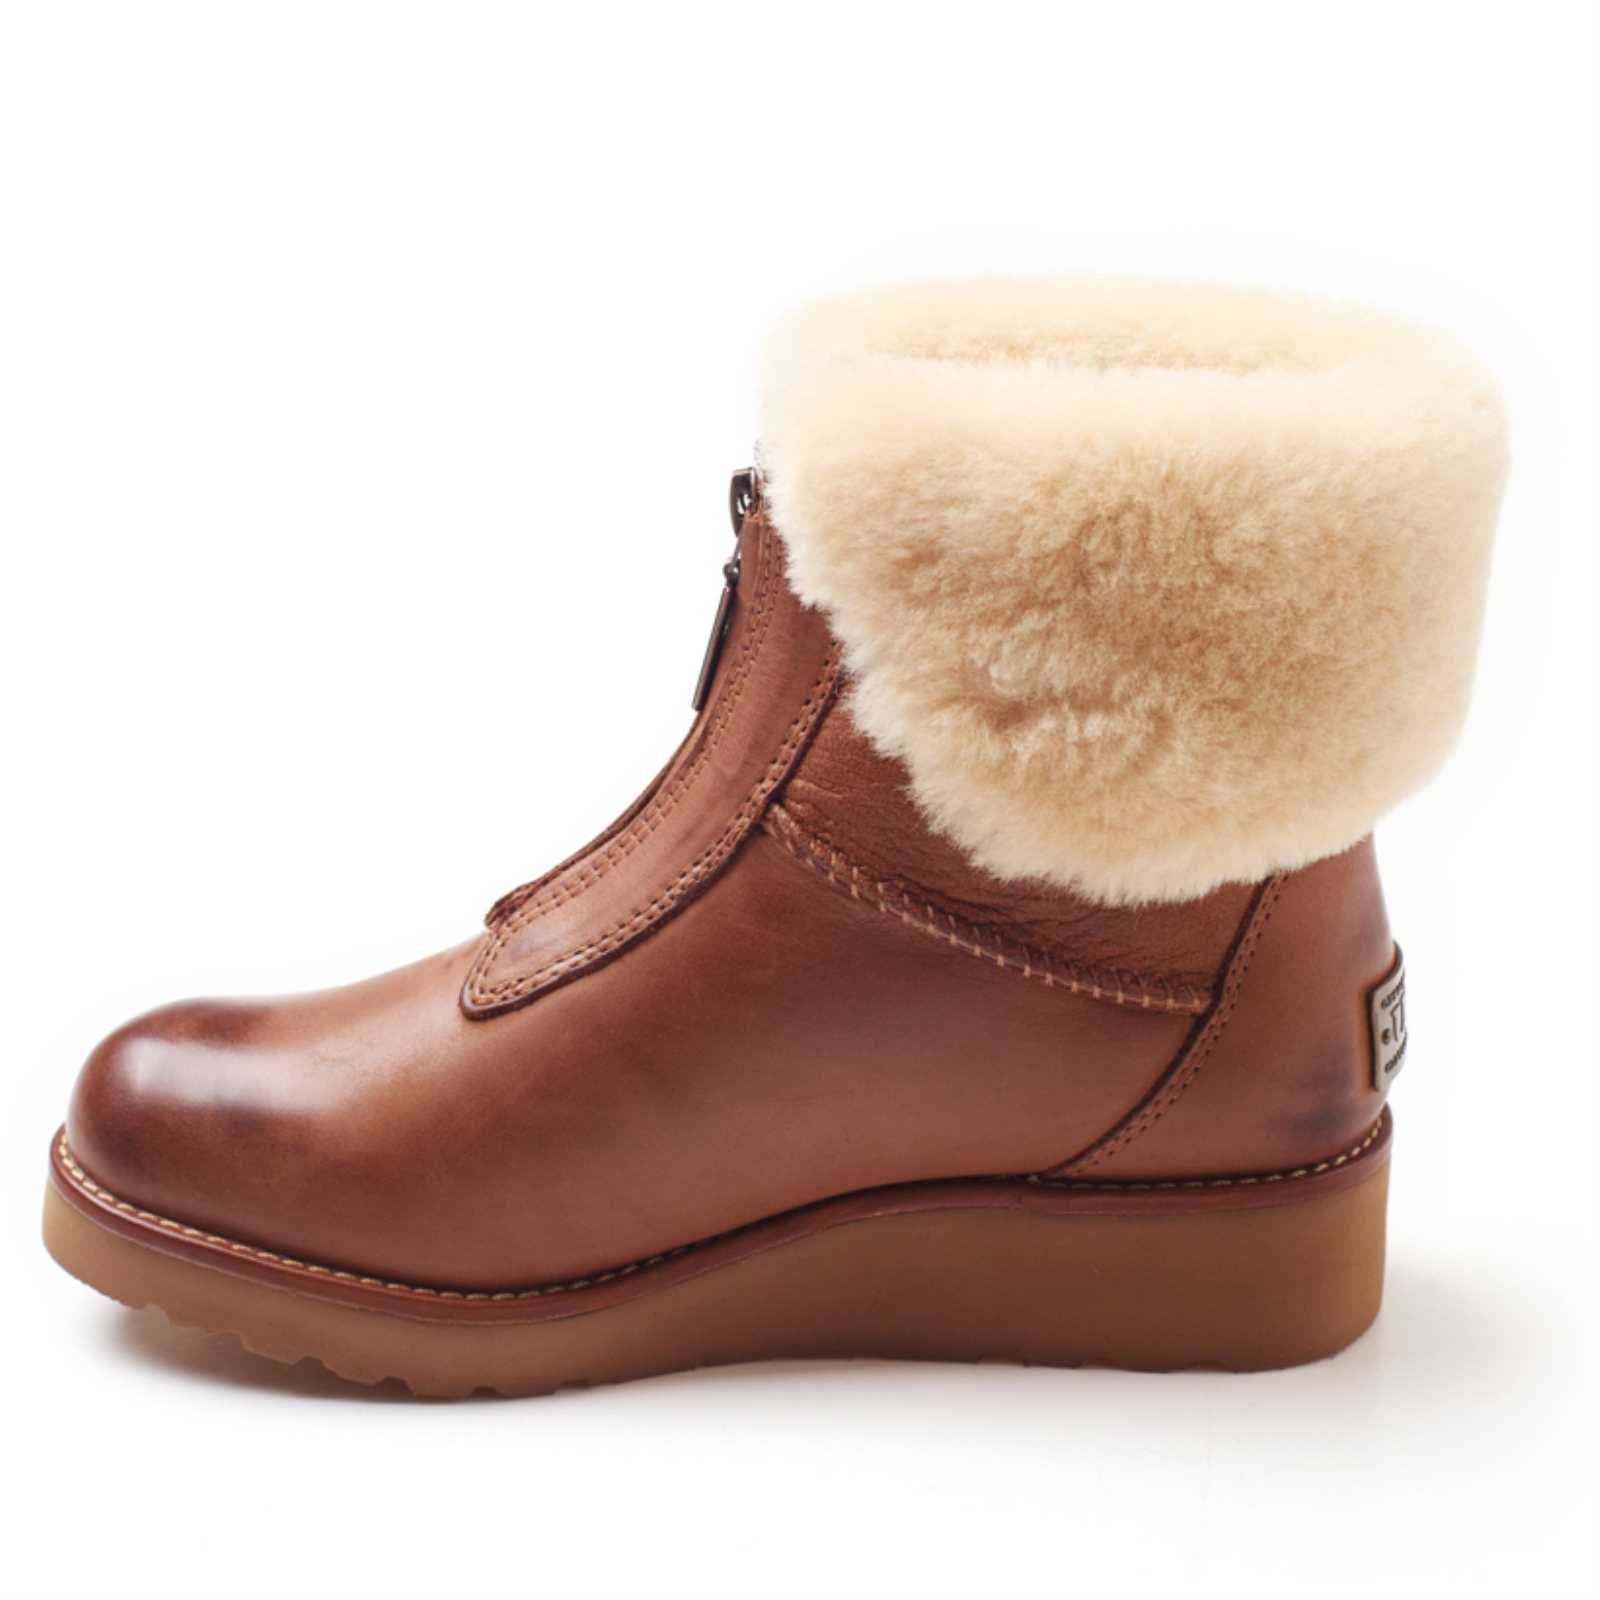 6644e6cb80b Details about UGG OZWEAR Ladies ABIR COLLAR ZIP BOOTS COWHIDE+SHEEPSKIN  WATER RESISTANT OB274